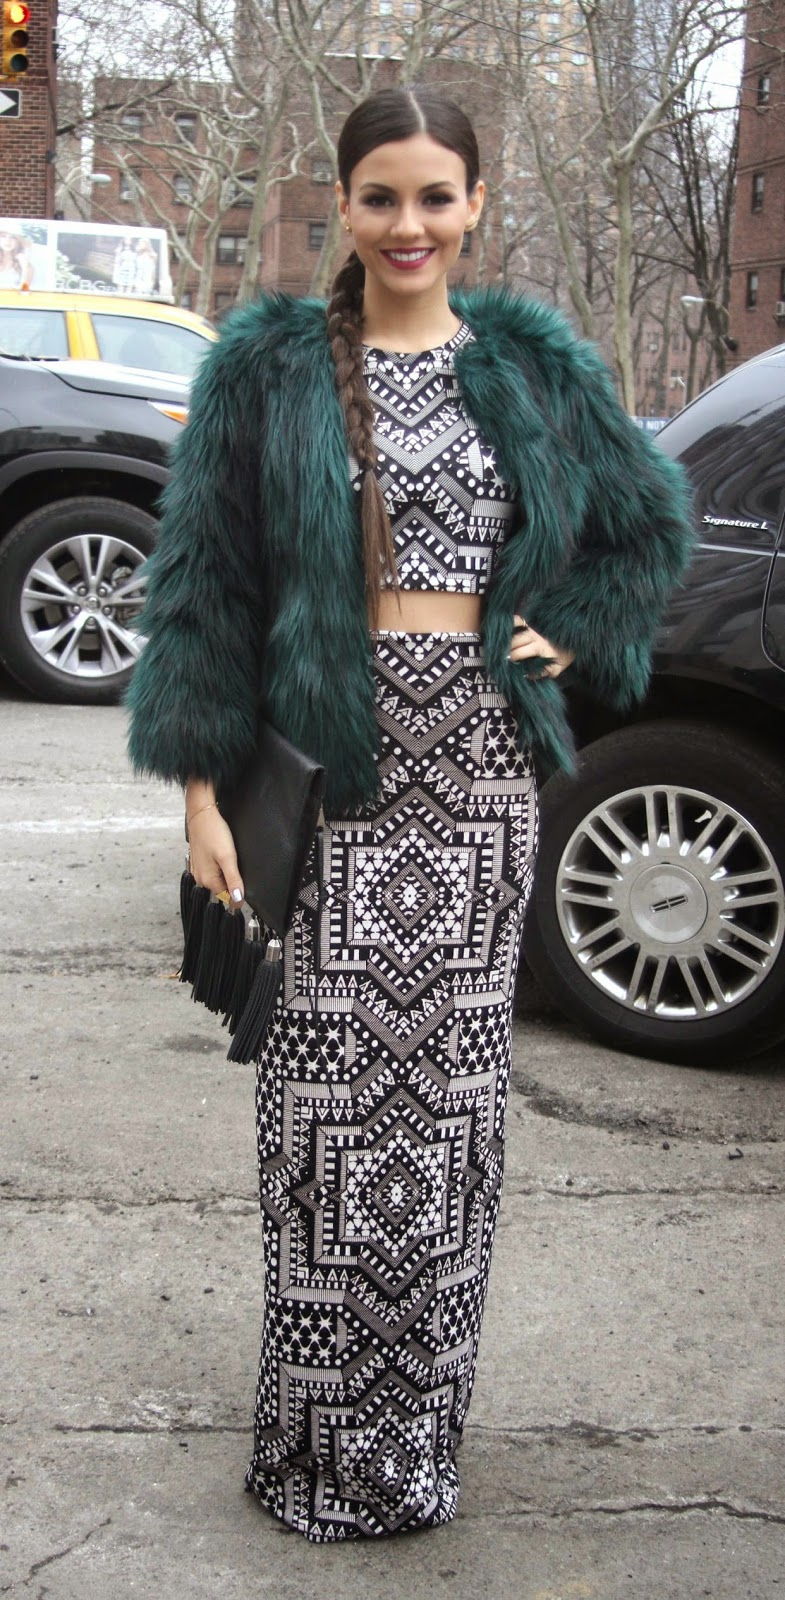 Victoria Justice in a geometric print cropped top and skirt at the New York Fashion Week F/W 2015